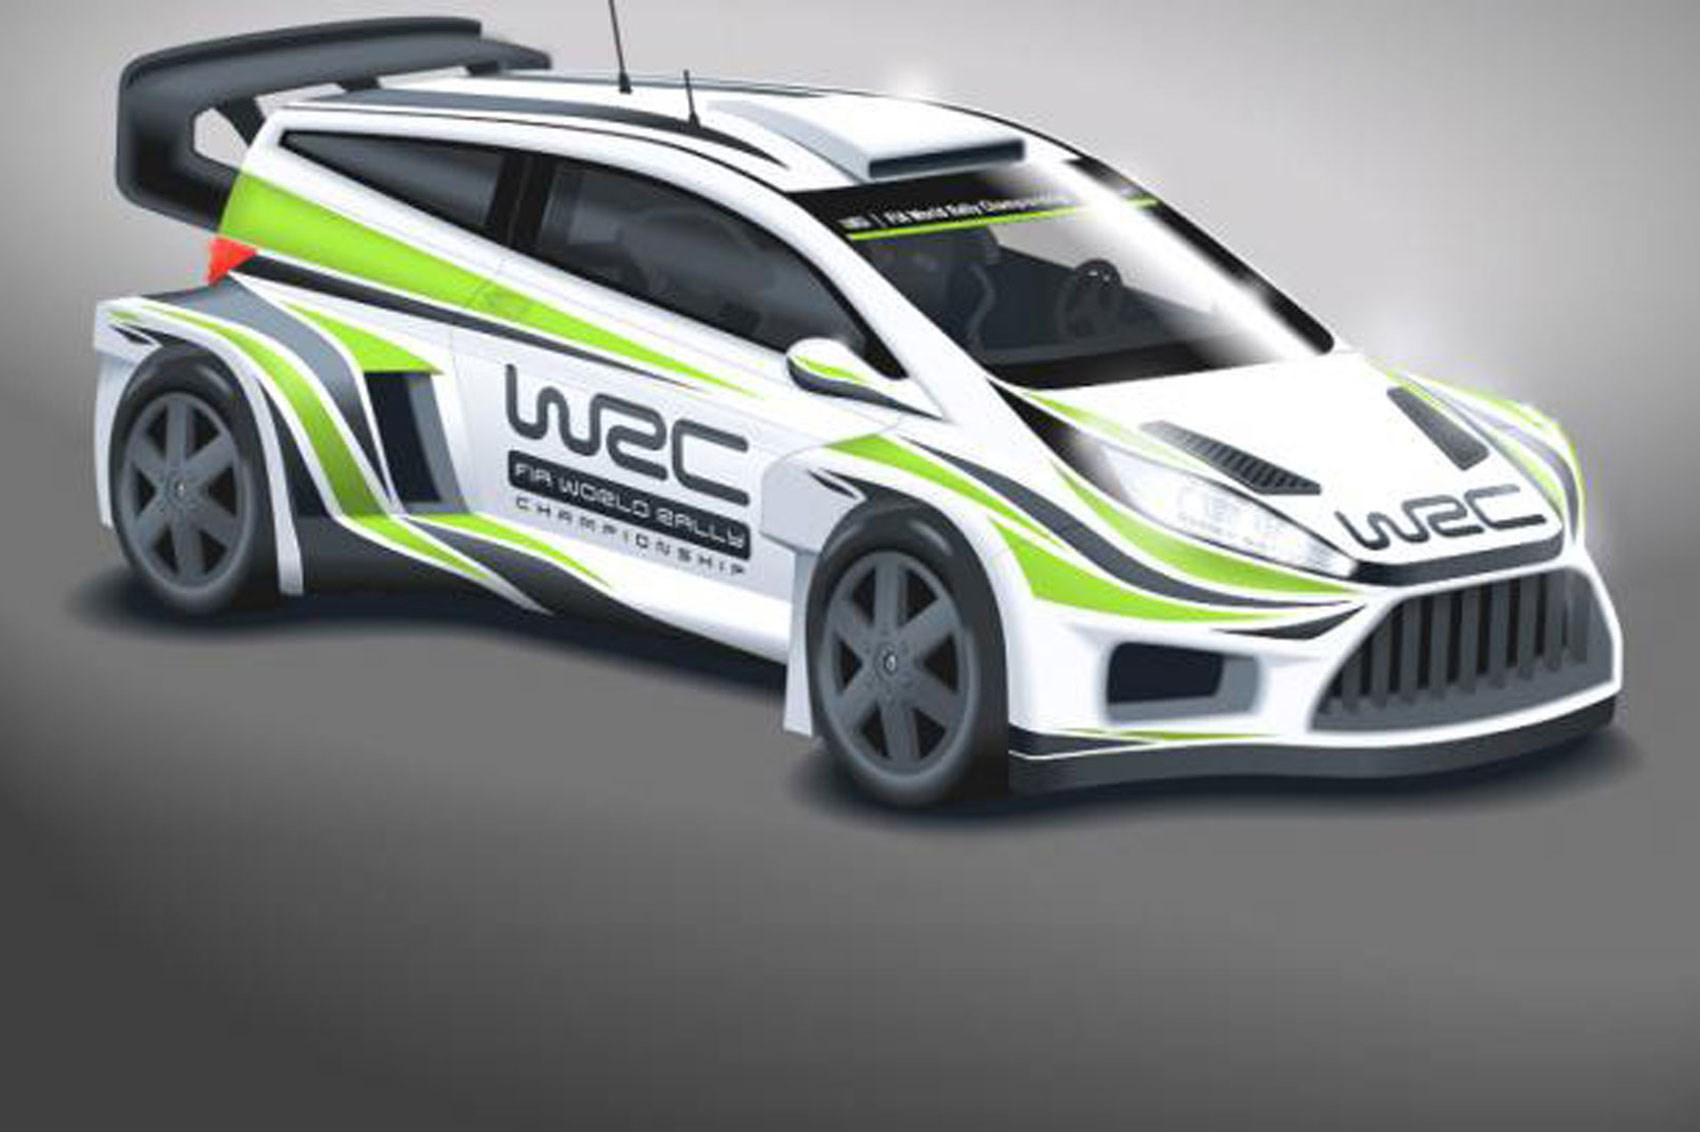 Ultrablogus  Personable Wild New Look For Wrc Cars In  By Car Magazine With Exquisite Wrc Cars Will Get Wider Bodies Bigger Wings And More Power For  With Comely  Chevy Camaro Interior Also Interior Of Chevrolet Cruze In Addition Mazdaspeed Interior And Pontiac Vibe Interior As Well As  Ford Focus Se Interior Additionally Ford Focus Interior  From Carmagazinecouk With Ultrablogus  Exquisite Wild New Look For Wrc Cars In  By Car Magazine With Comely Wrc Cars Will Get Wider Bodies Bigger Wings And More Power For  And Personable  Chevy Camaro Interior Also Interior Of Chevrolet Cruze In Addition Mazdaspeed Interior From Carmagazinecouk